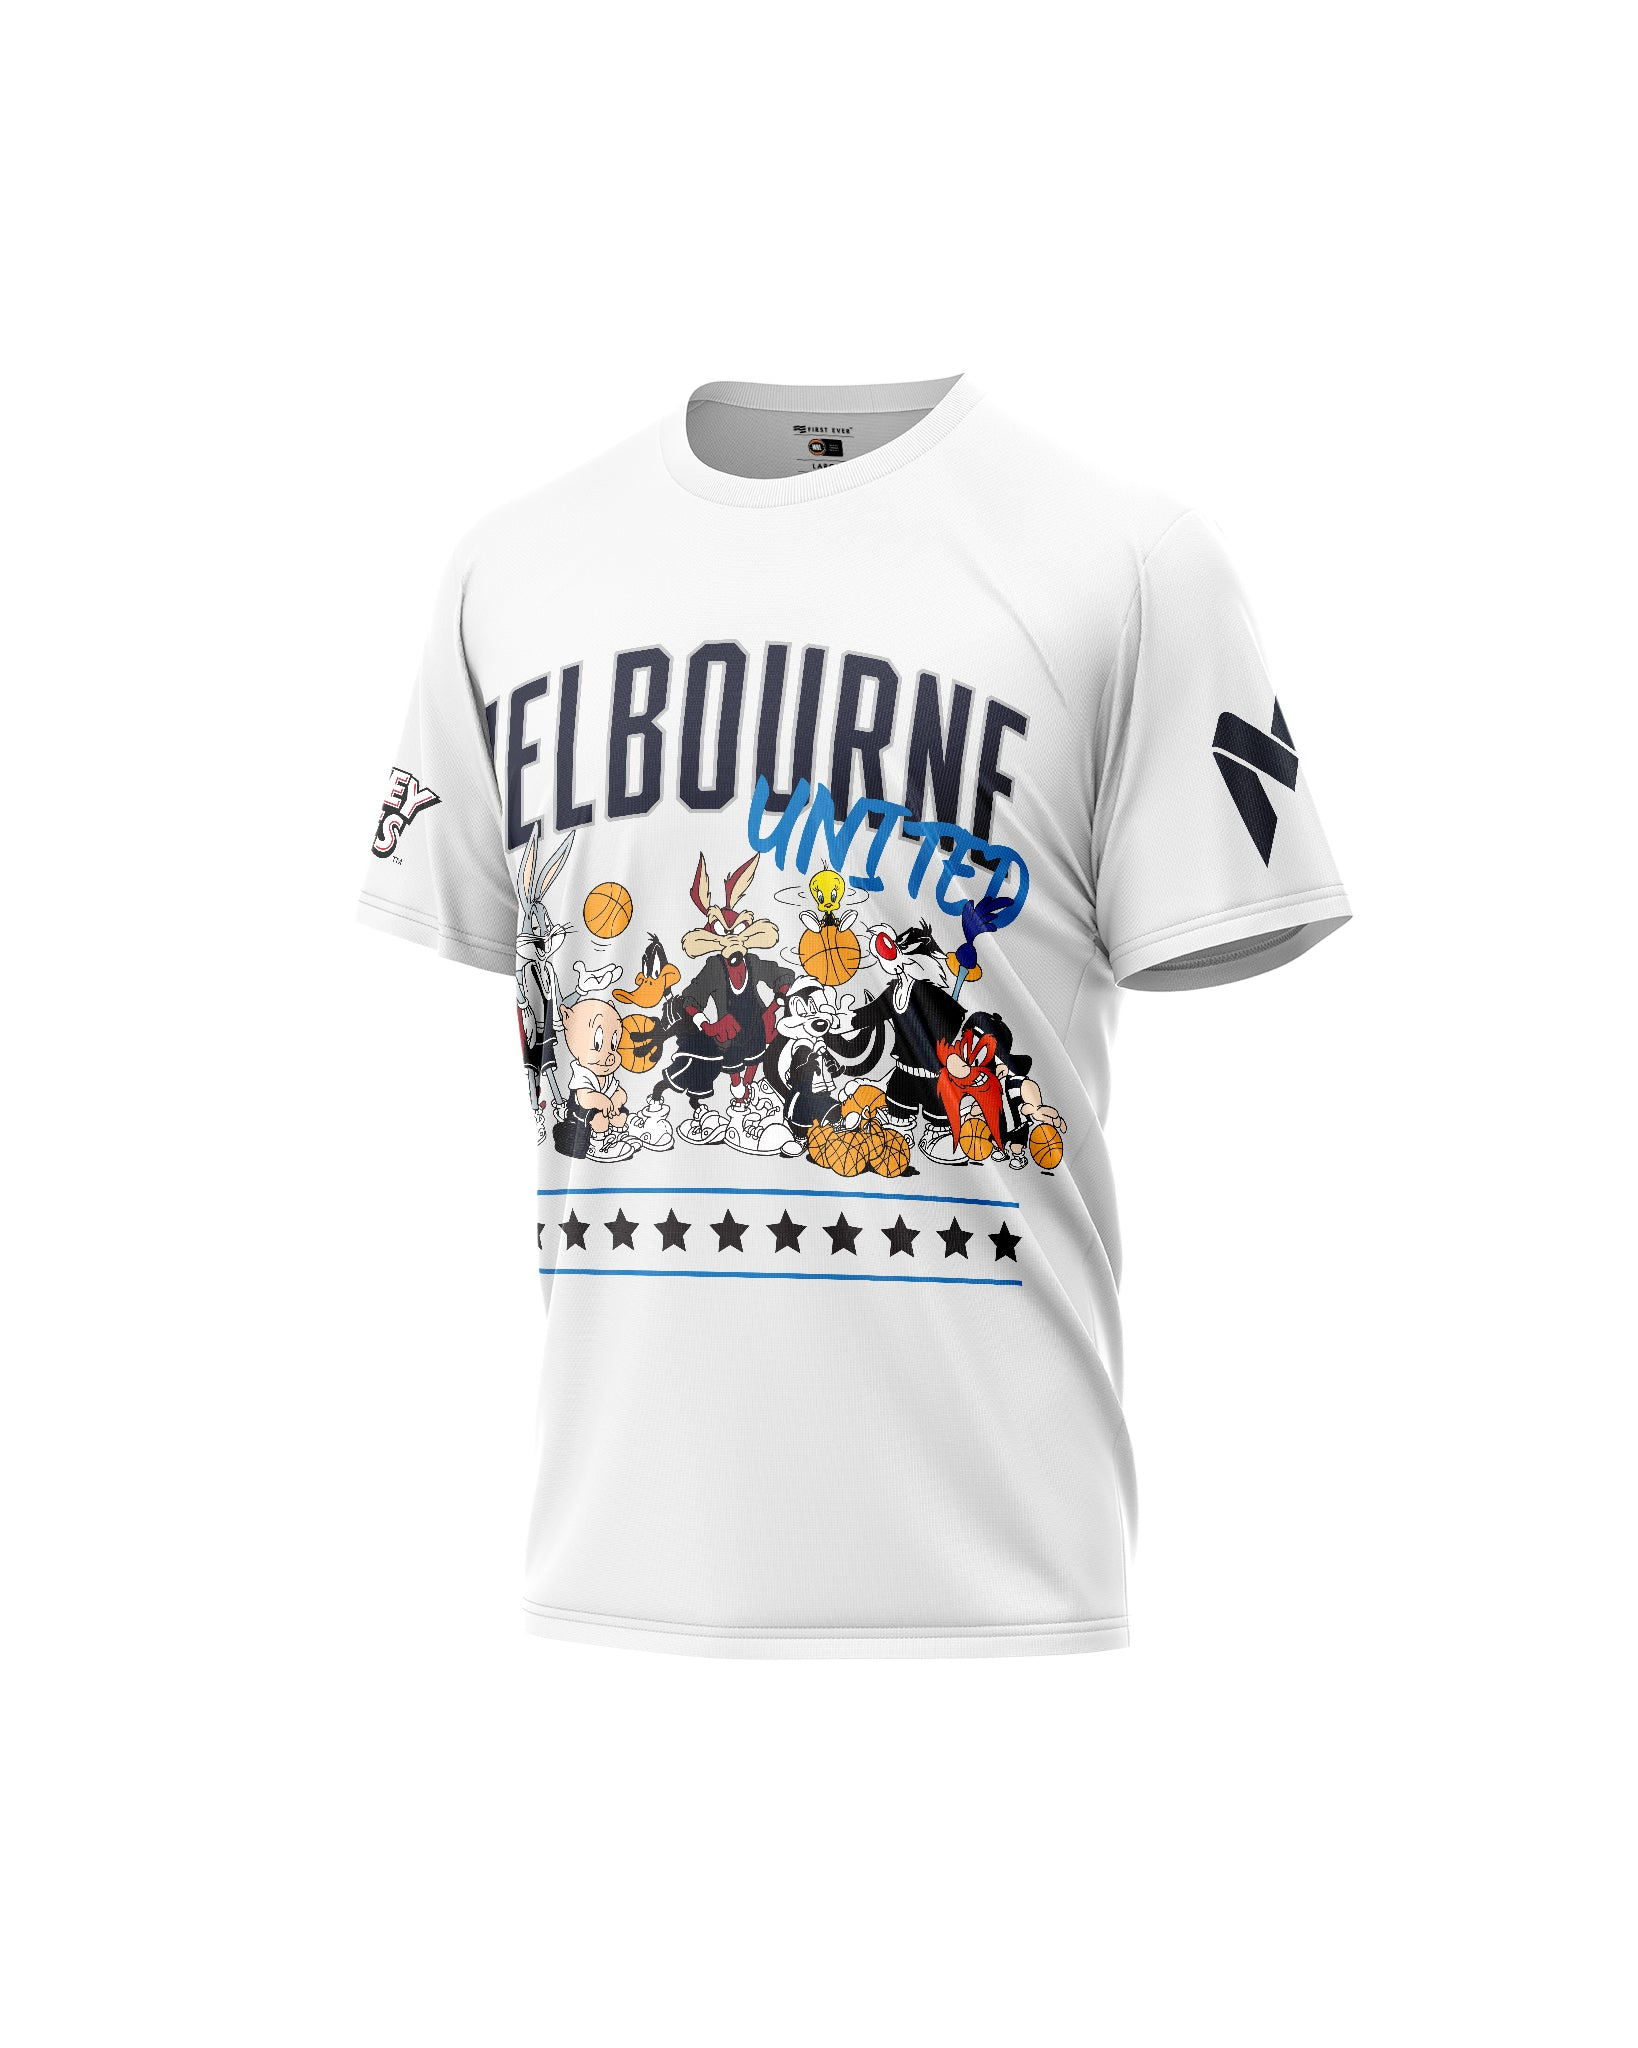 Melbourne United 20/21 Looney Tunes Squad Tee